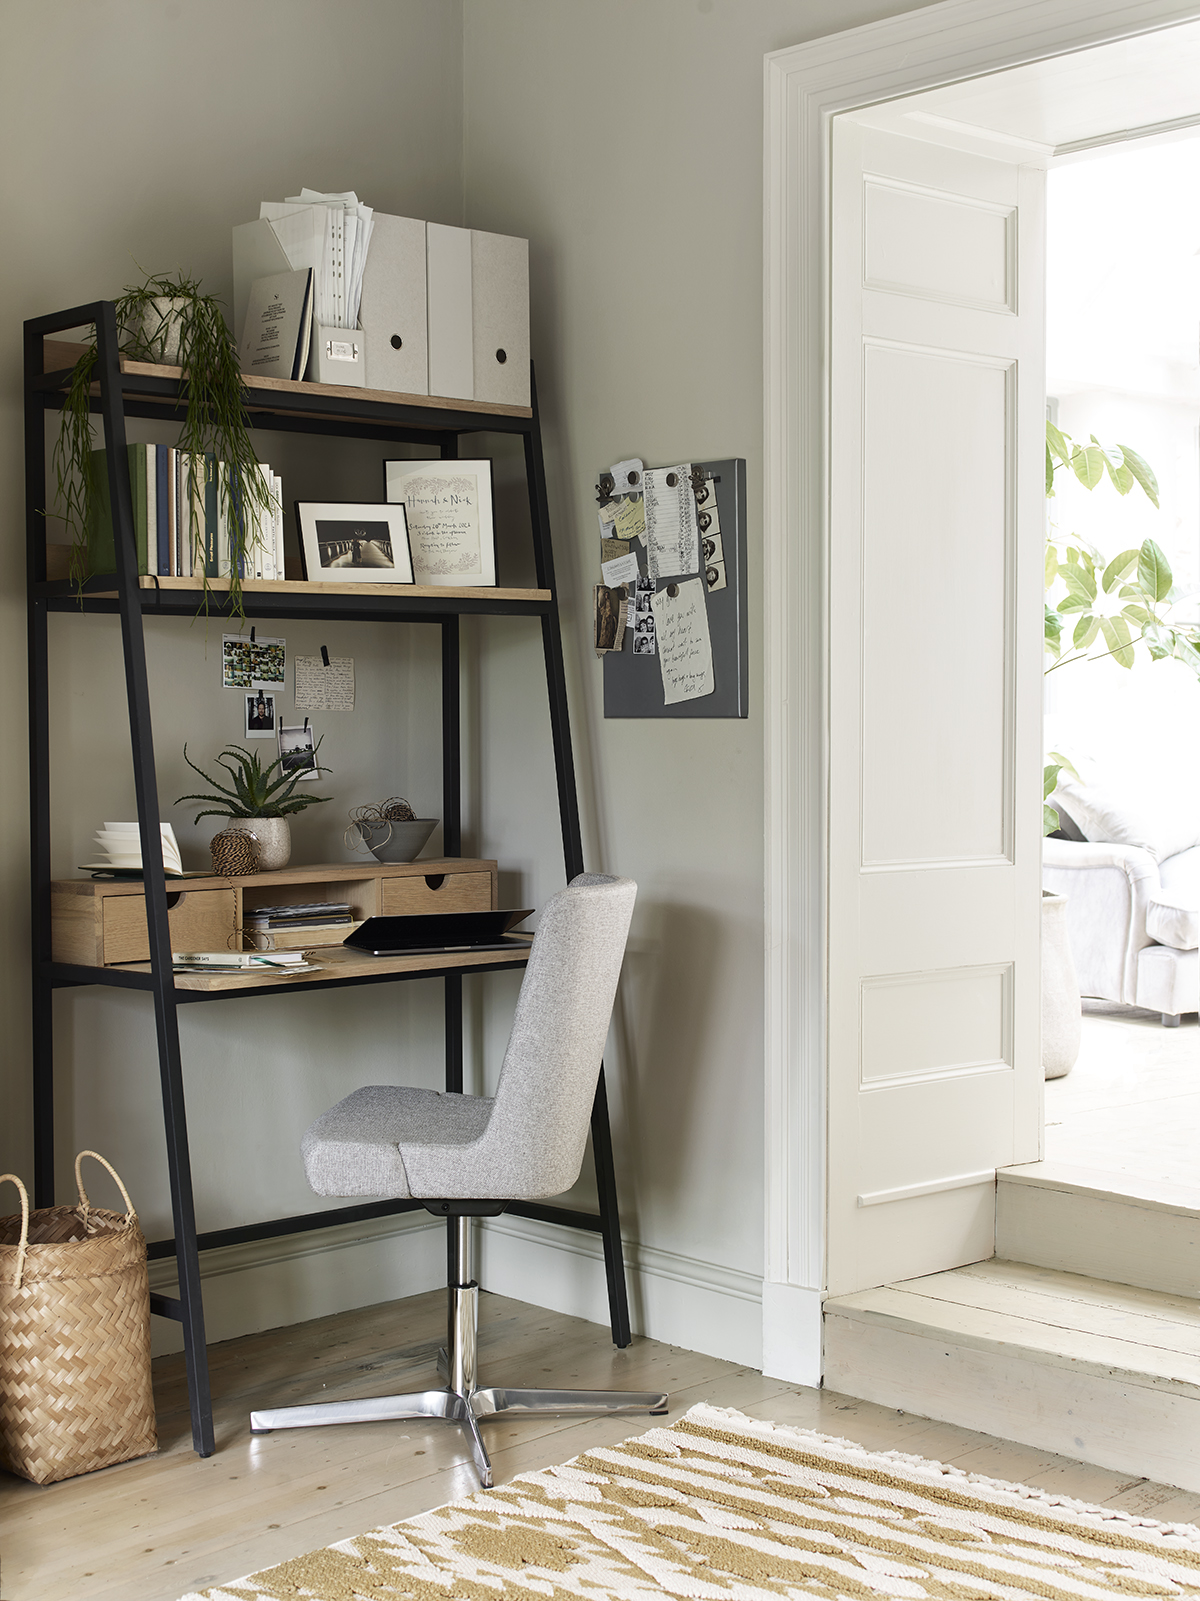 Our Moreton desk is bursting with storage space